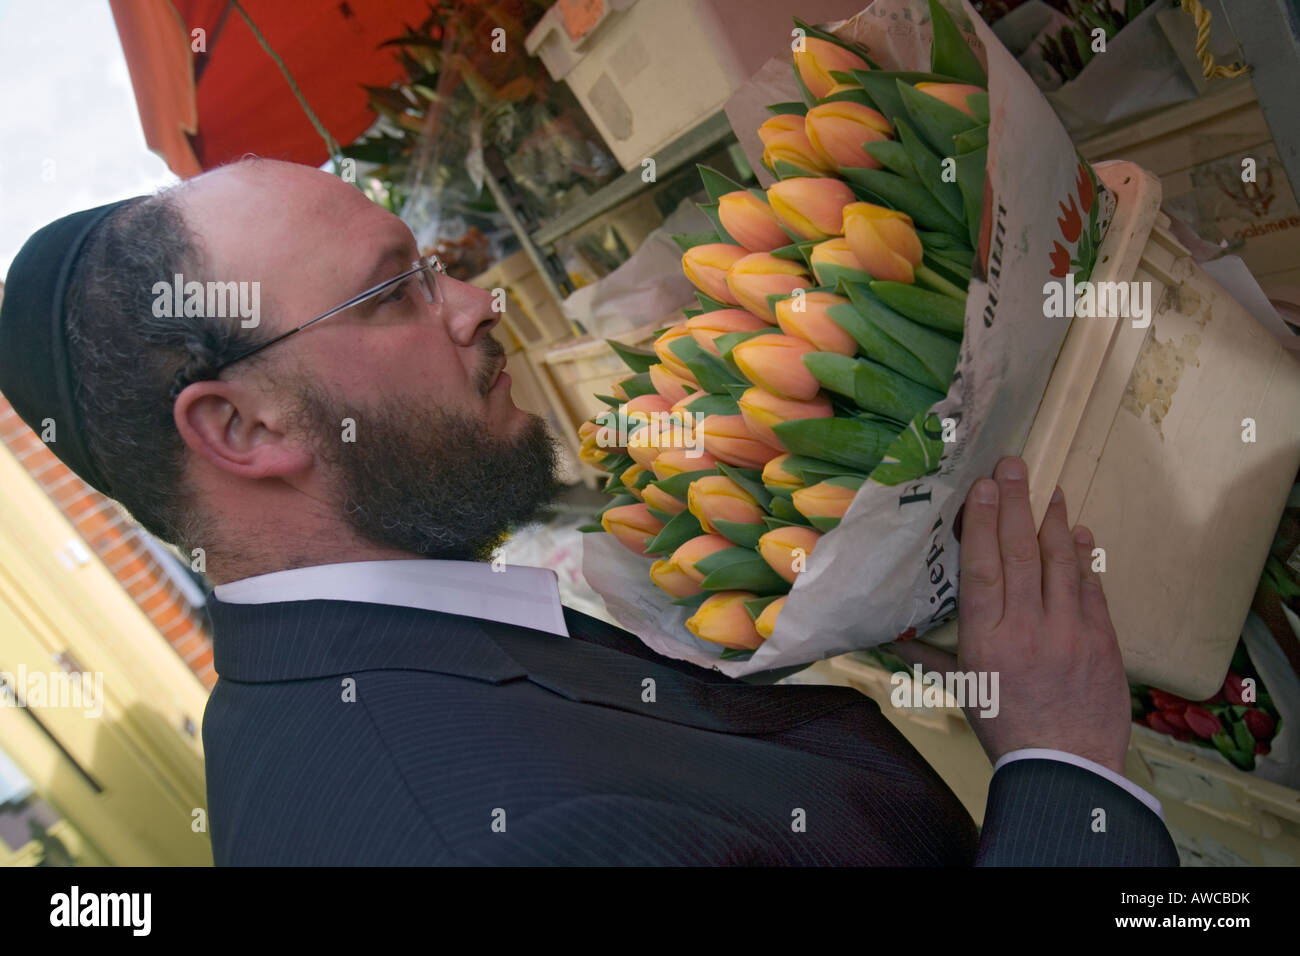 a jewish man smelling flowers at columbia road flower market - Stock Image